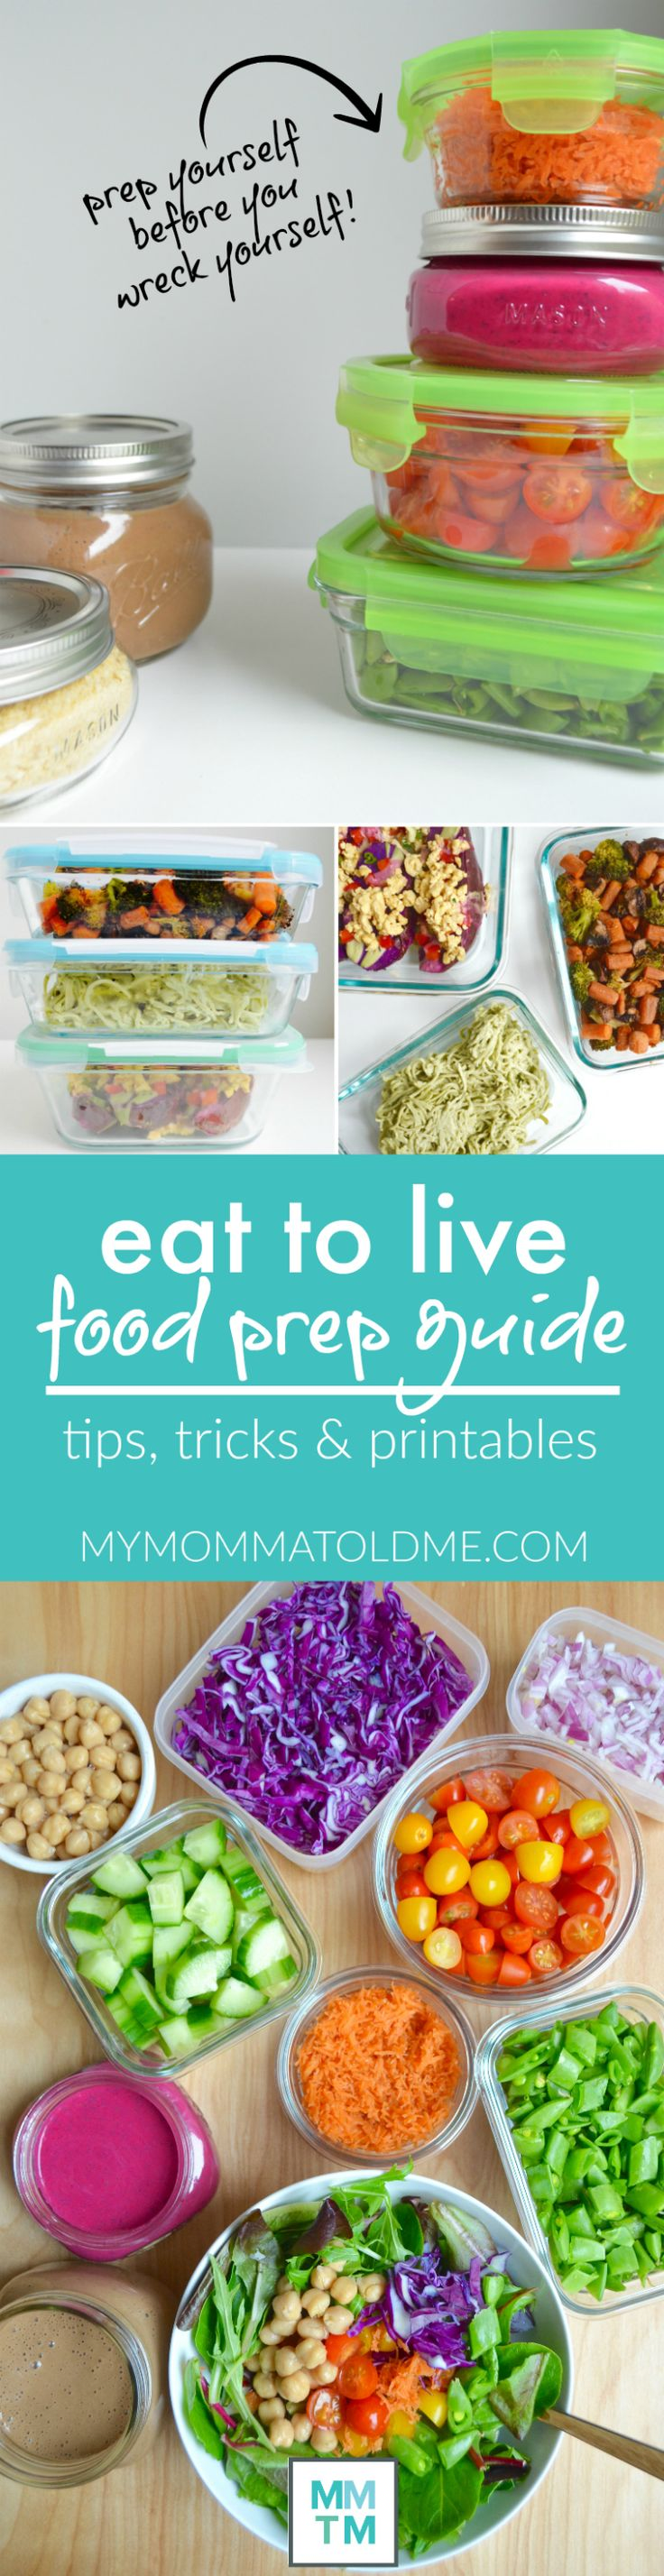 Everything you need to eat clean, nutritarian, whole food plant-based, no-oil for a week! Meal prep on Sunday and eat to live all week long! Get a free printable meal planning schedule!